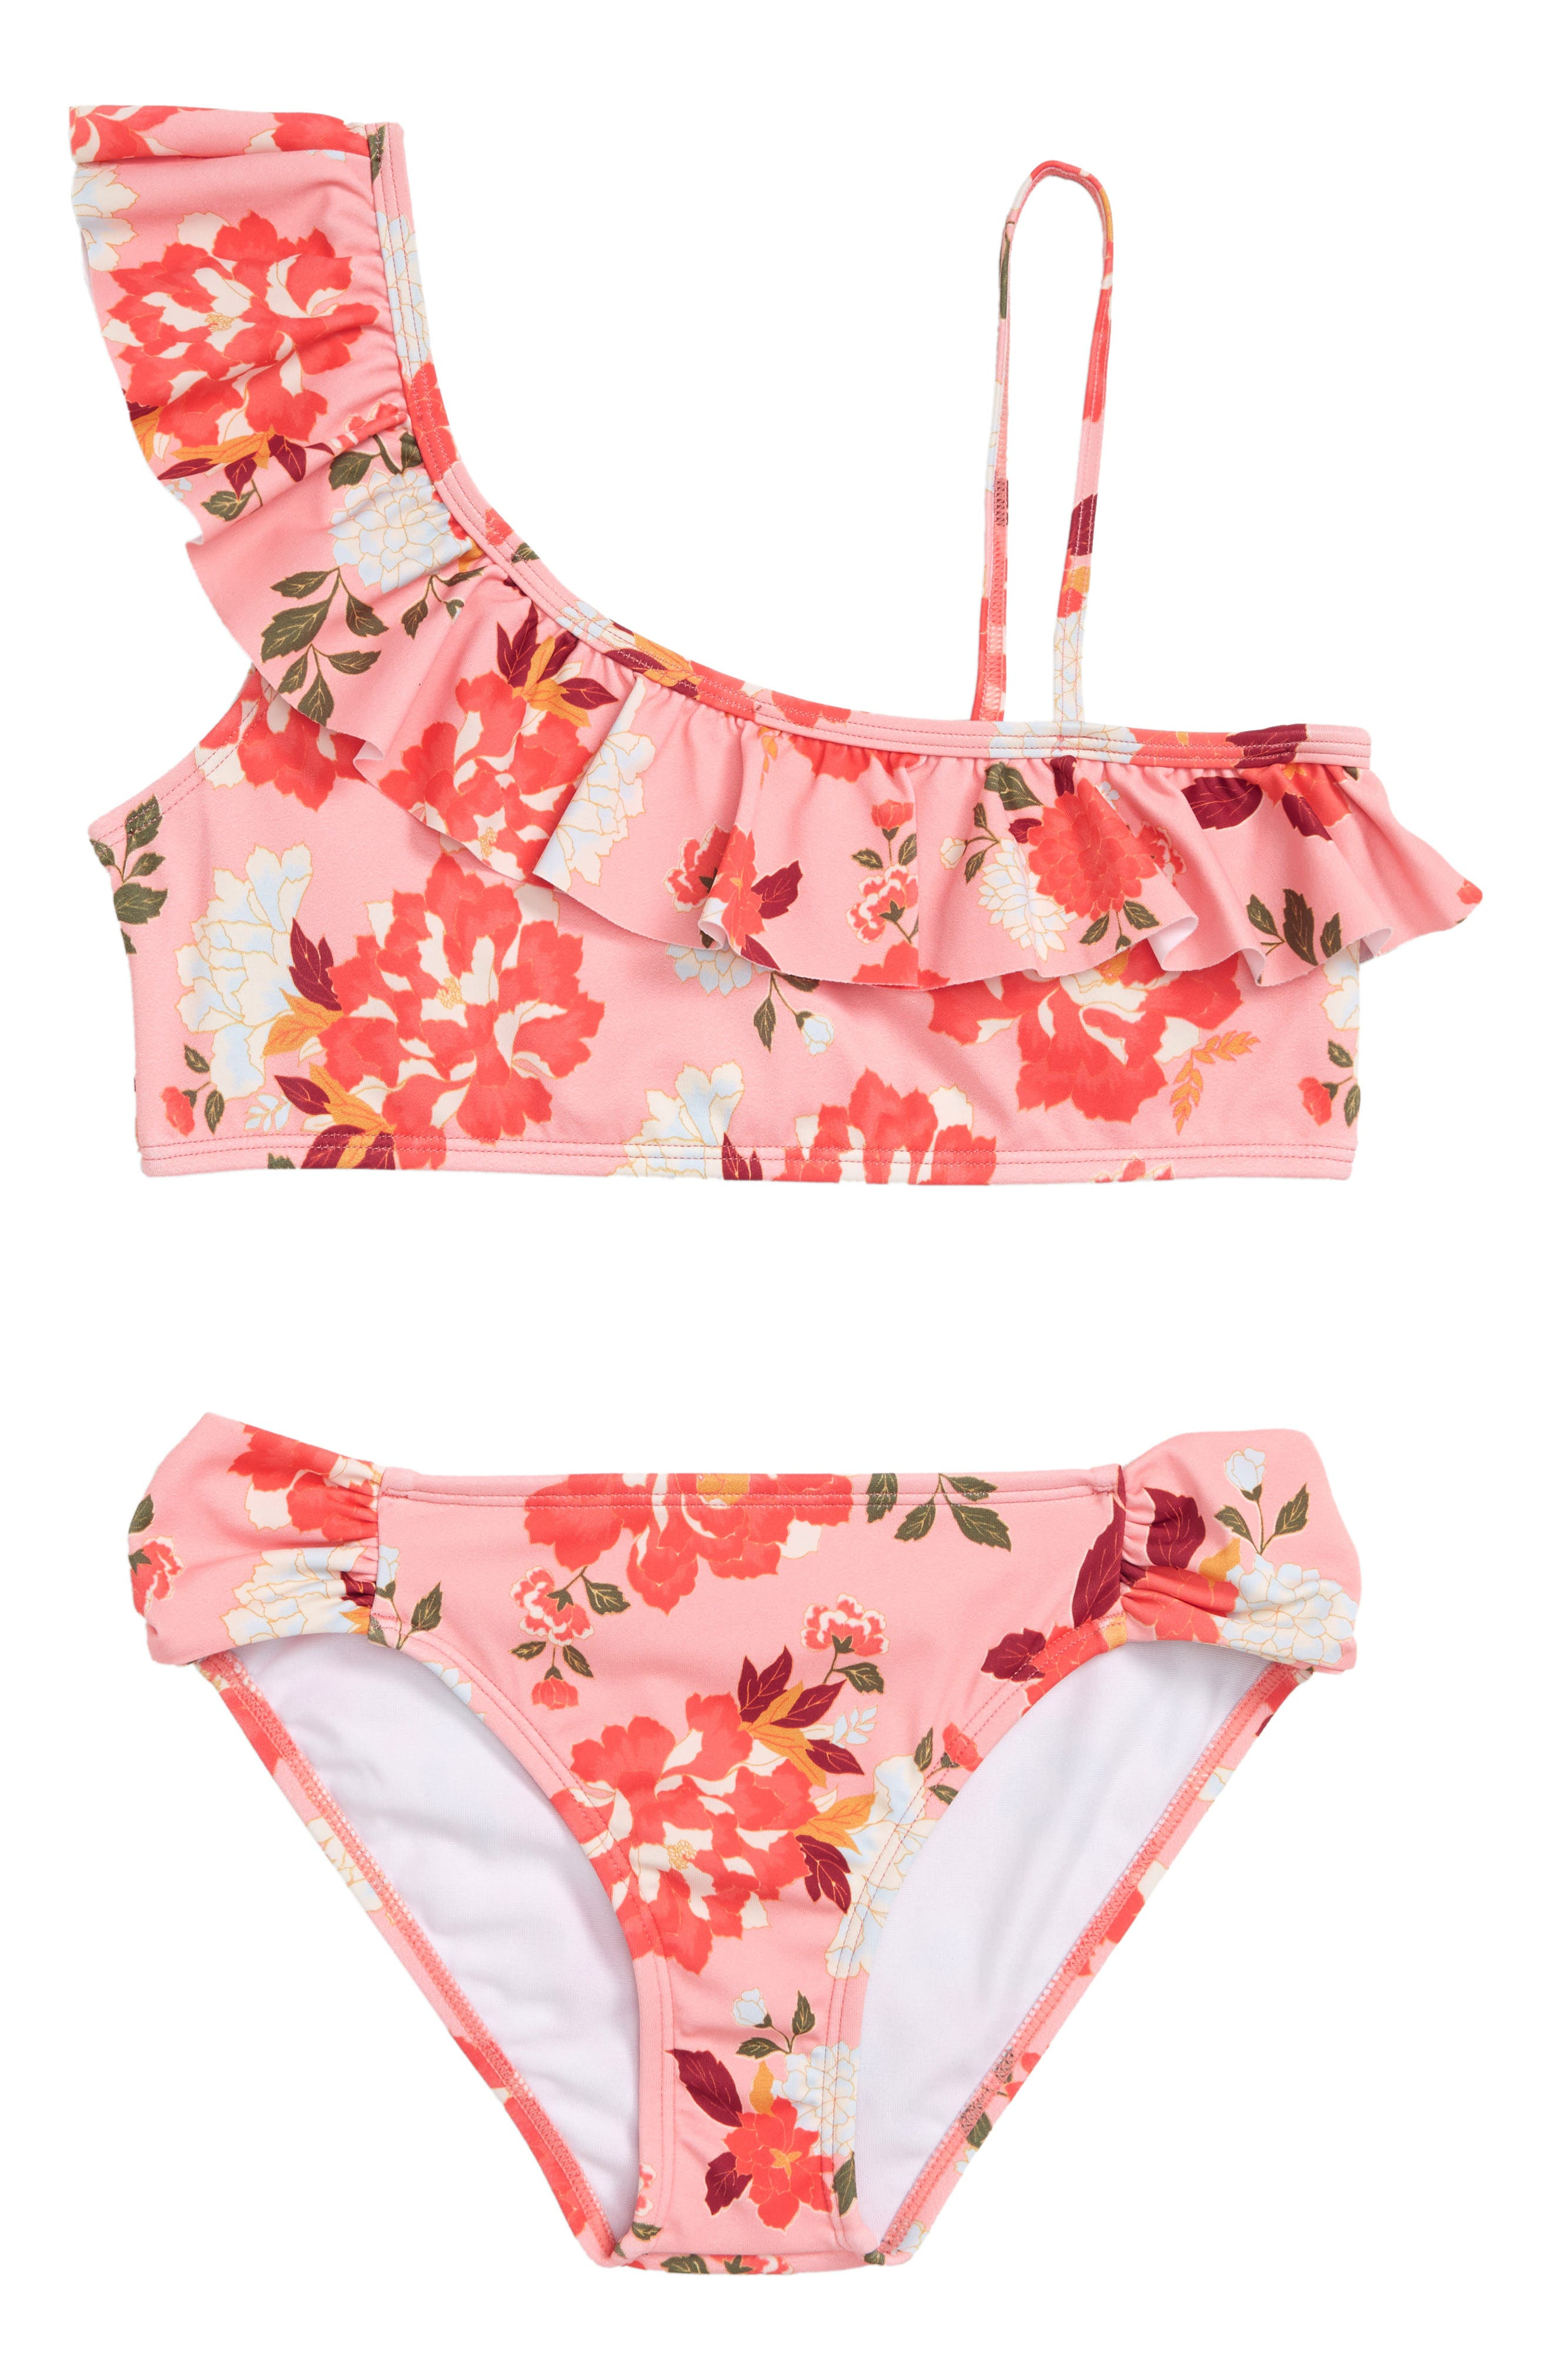 All Along Ruffle Two-Piece Swimsuit,                             Main thumbnail 1, color,                             660